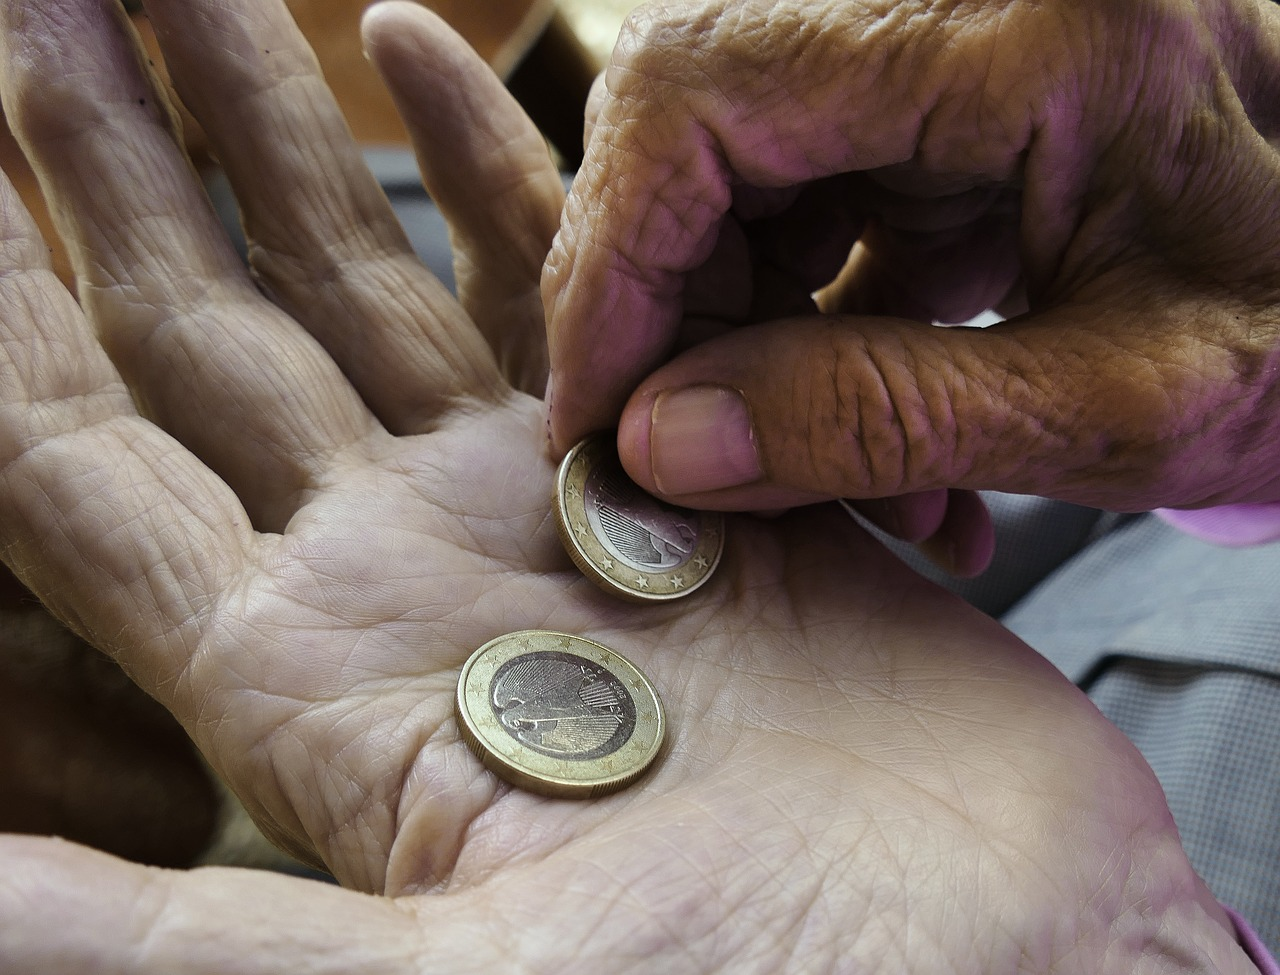 Millions of pensioners relying on just £7,000 per year!